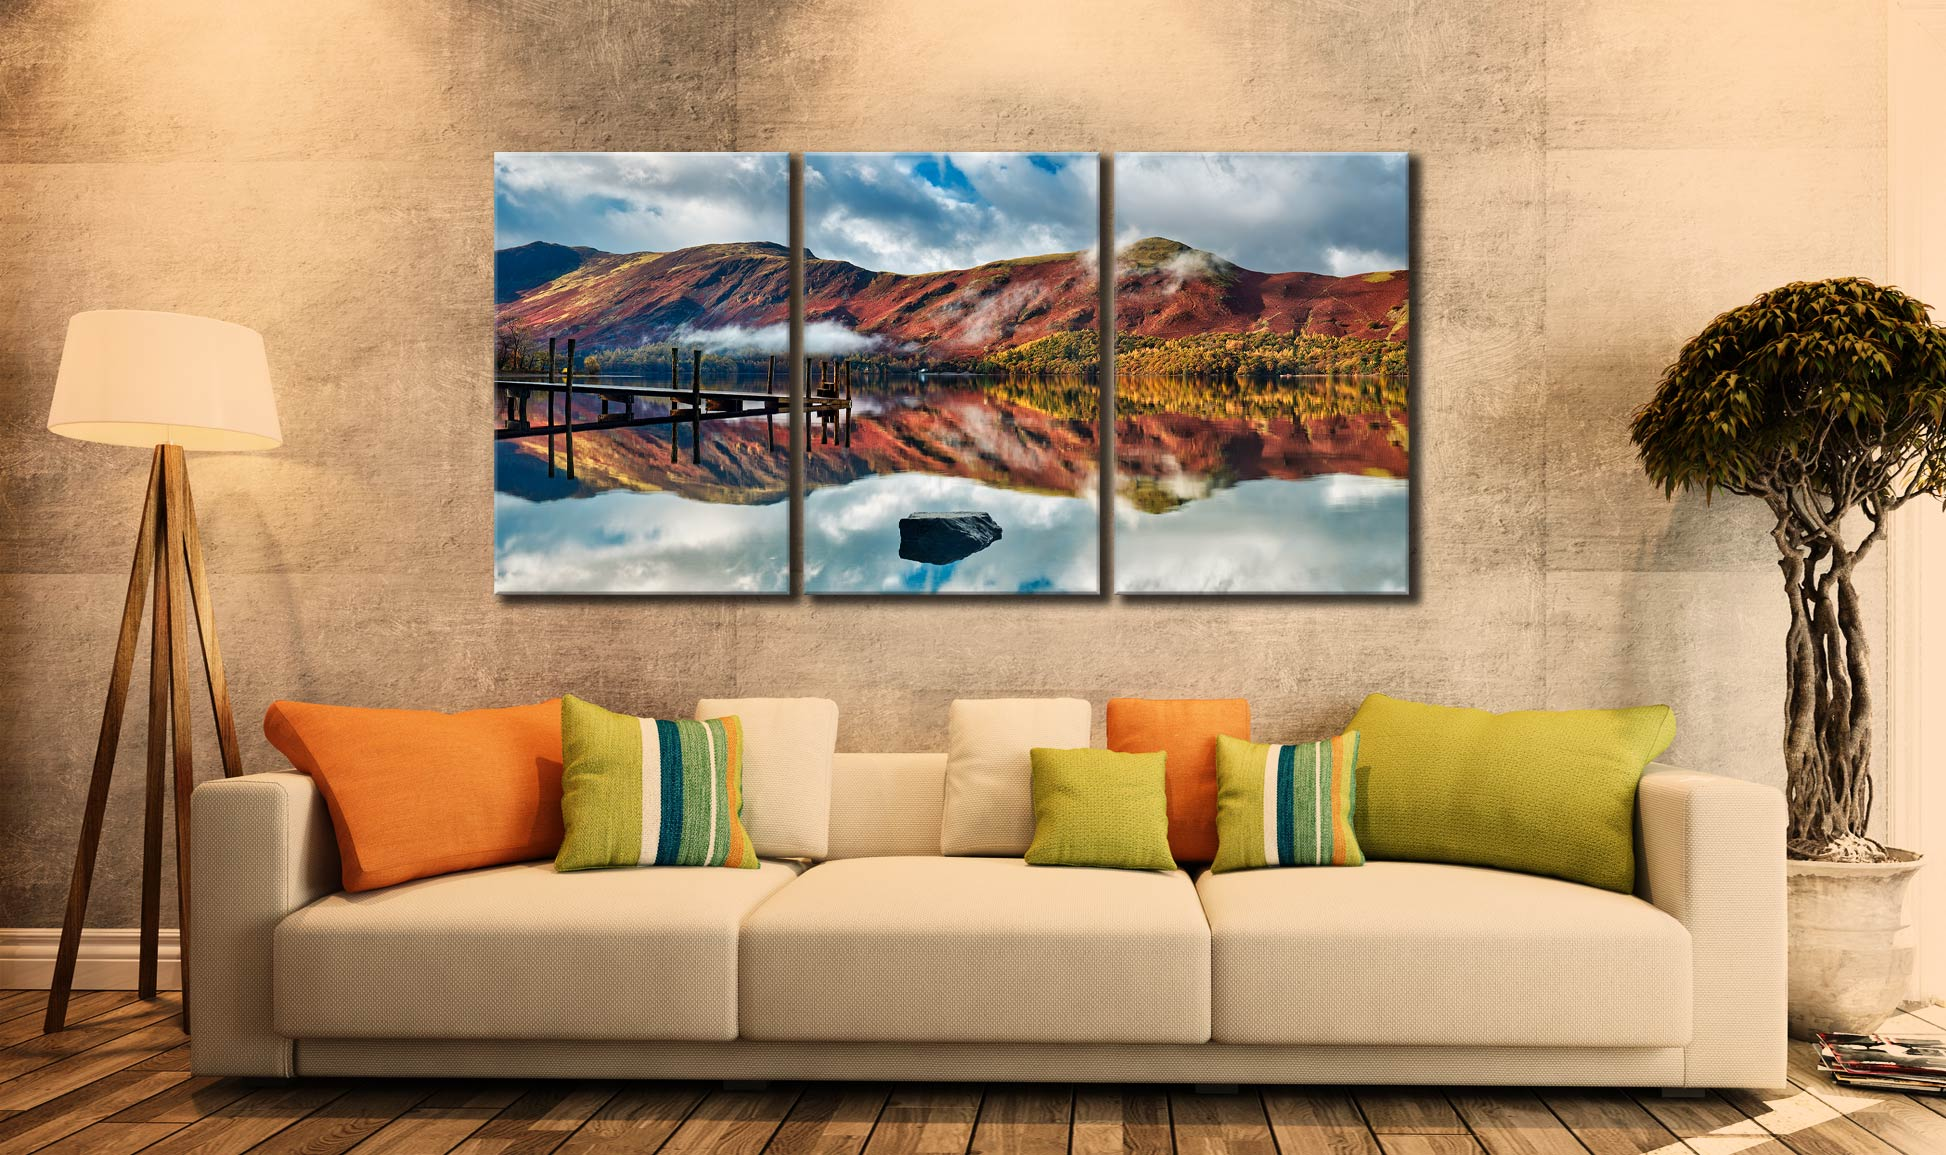 Late Autumn at Ashness Jetty - 3 Panel Canvas on Wall